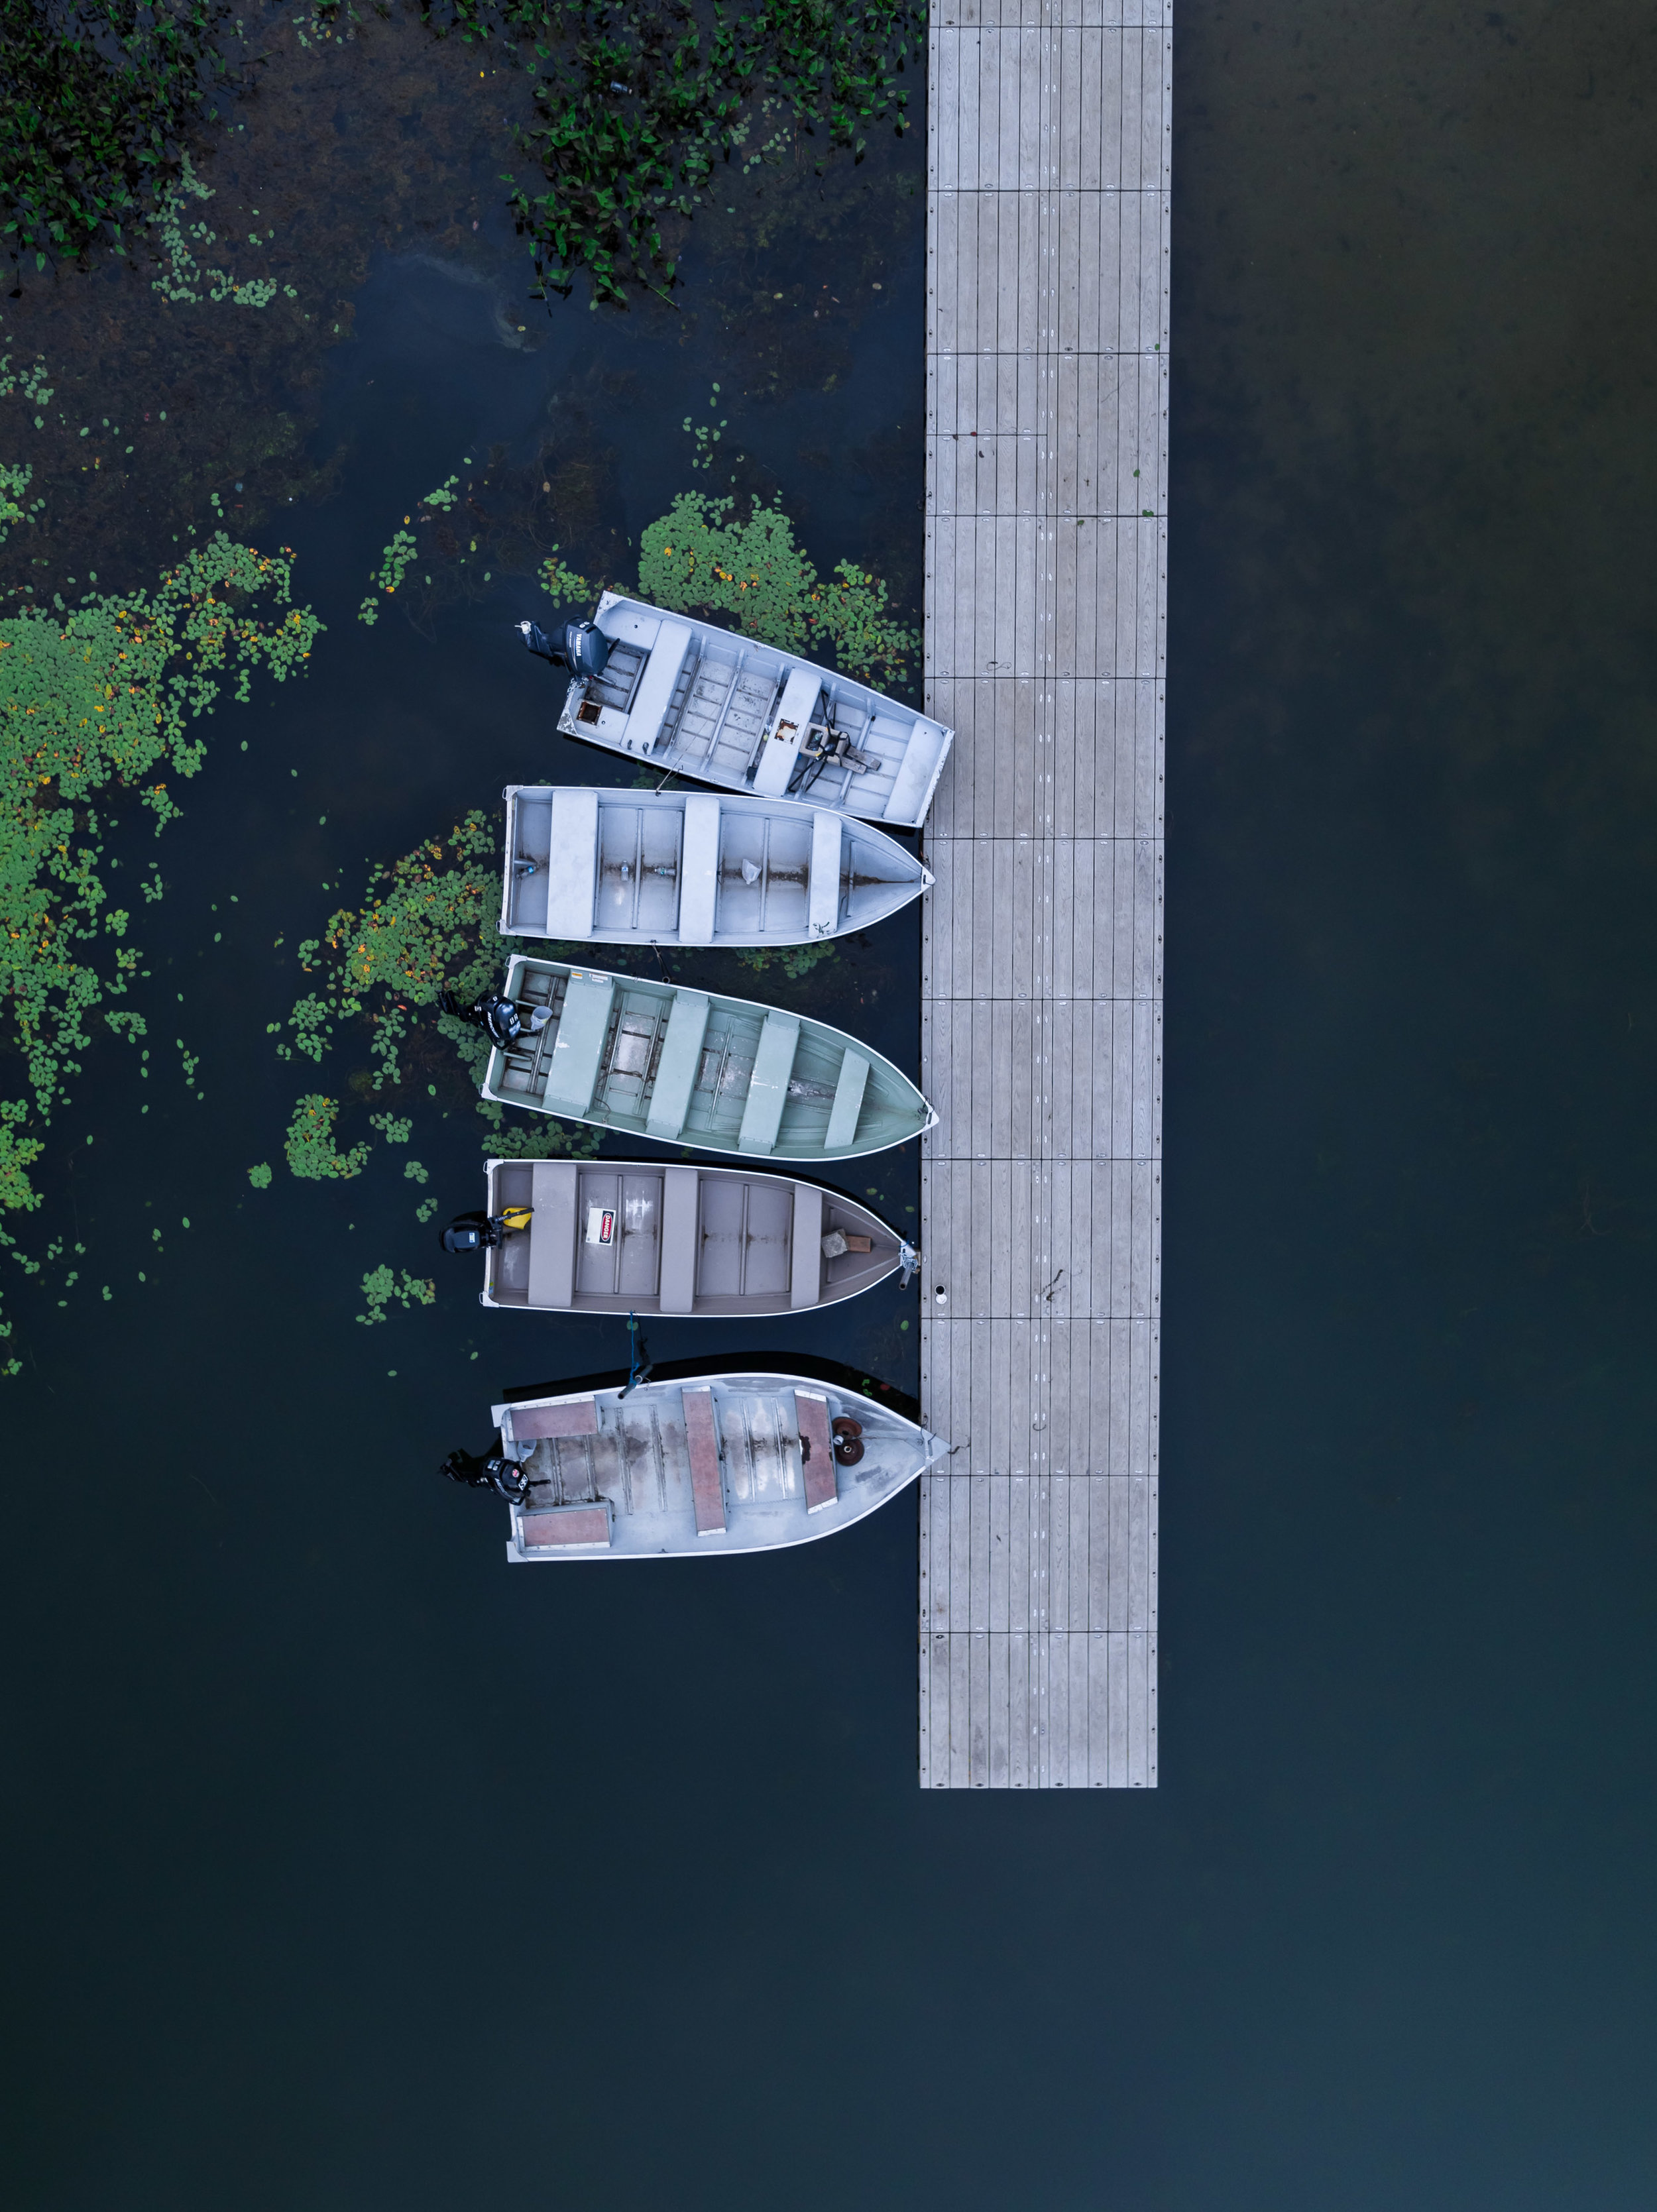 softcolorboats_typoland_aerial-1.jpg